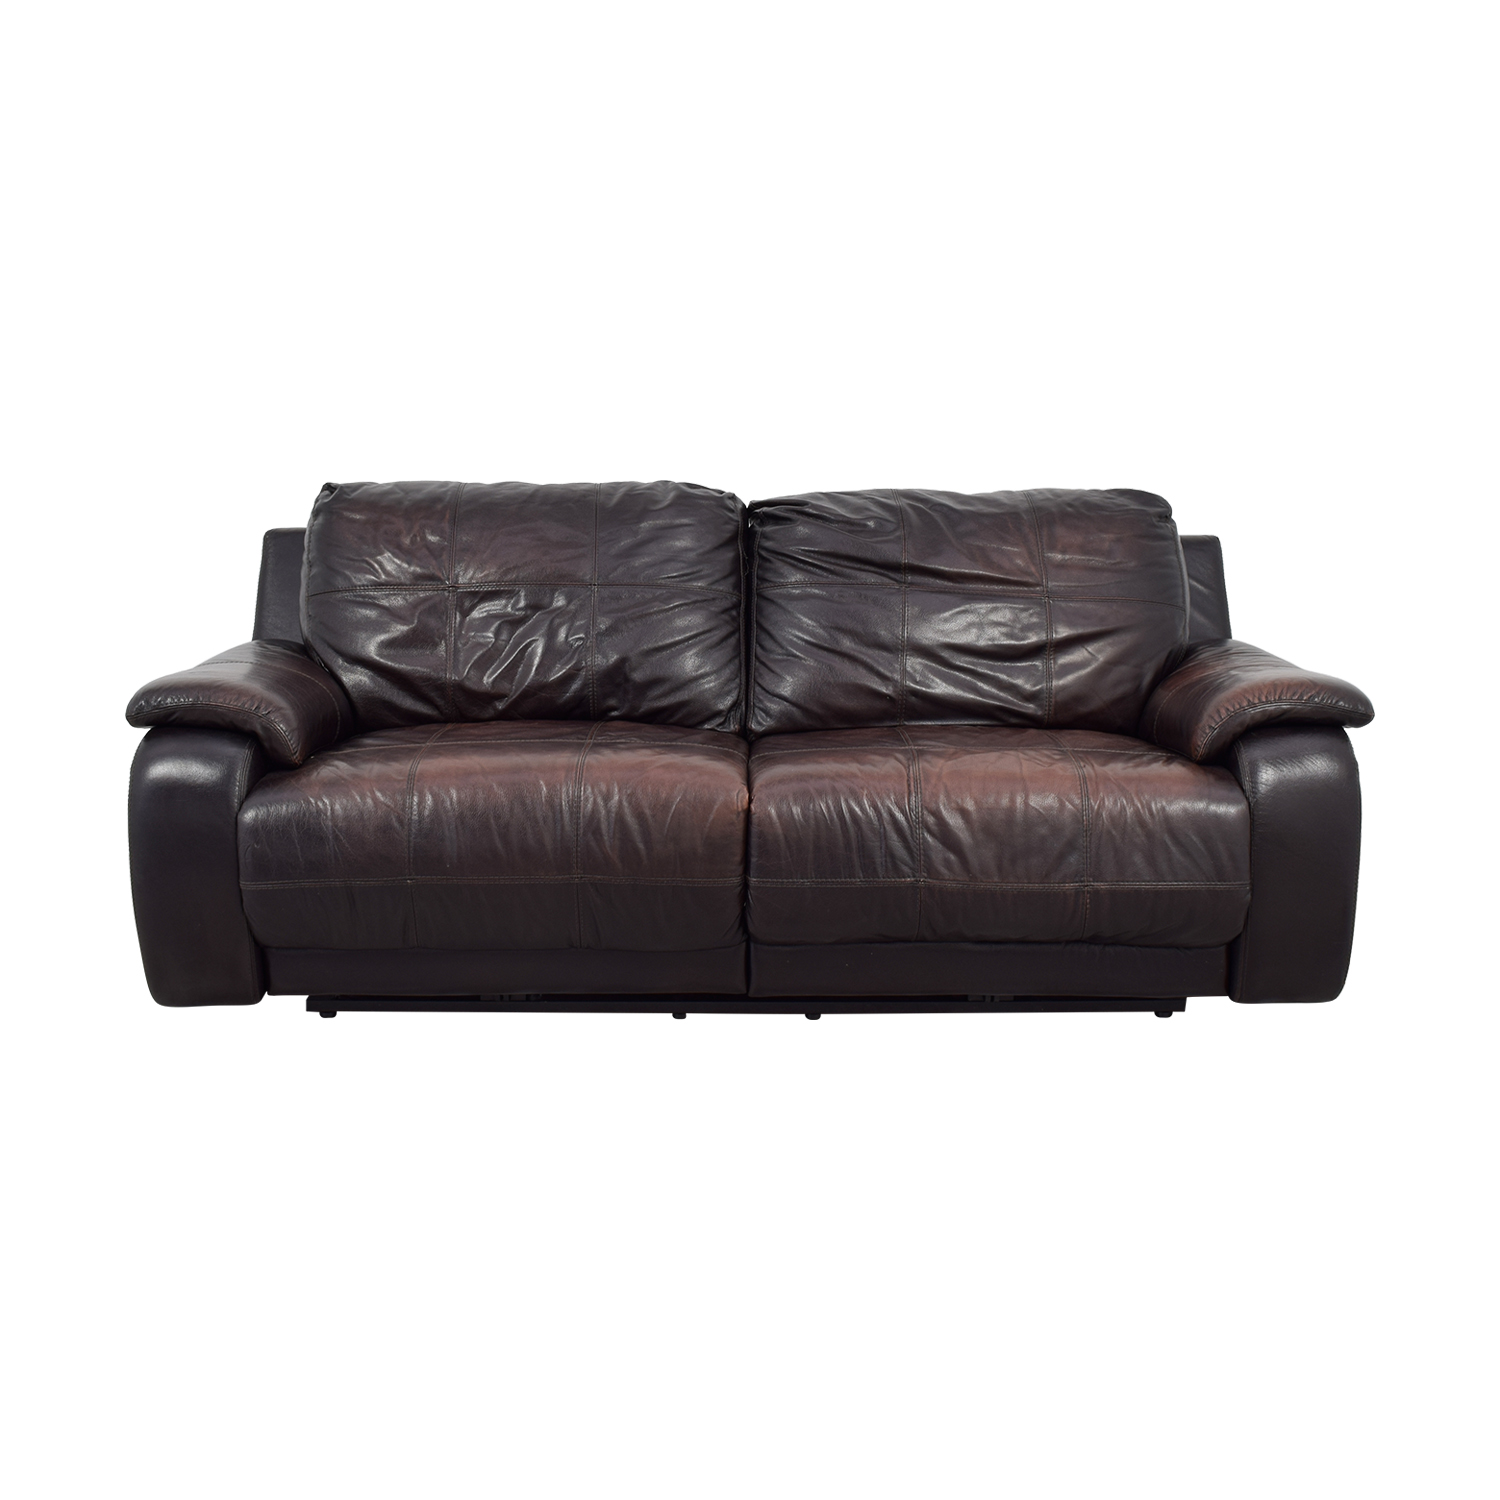 Raymour U0026 Flanigan Raymour U0026 Flanigan Brown Leather Power Recliner Sofa ...